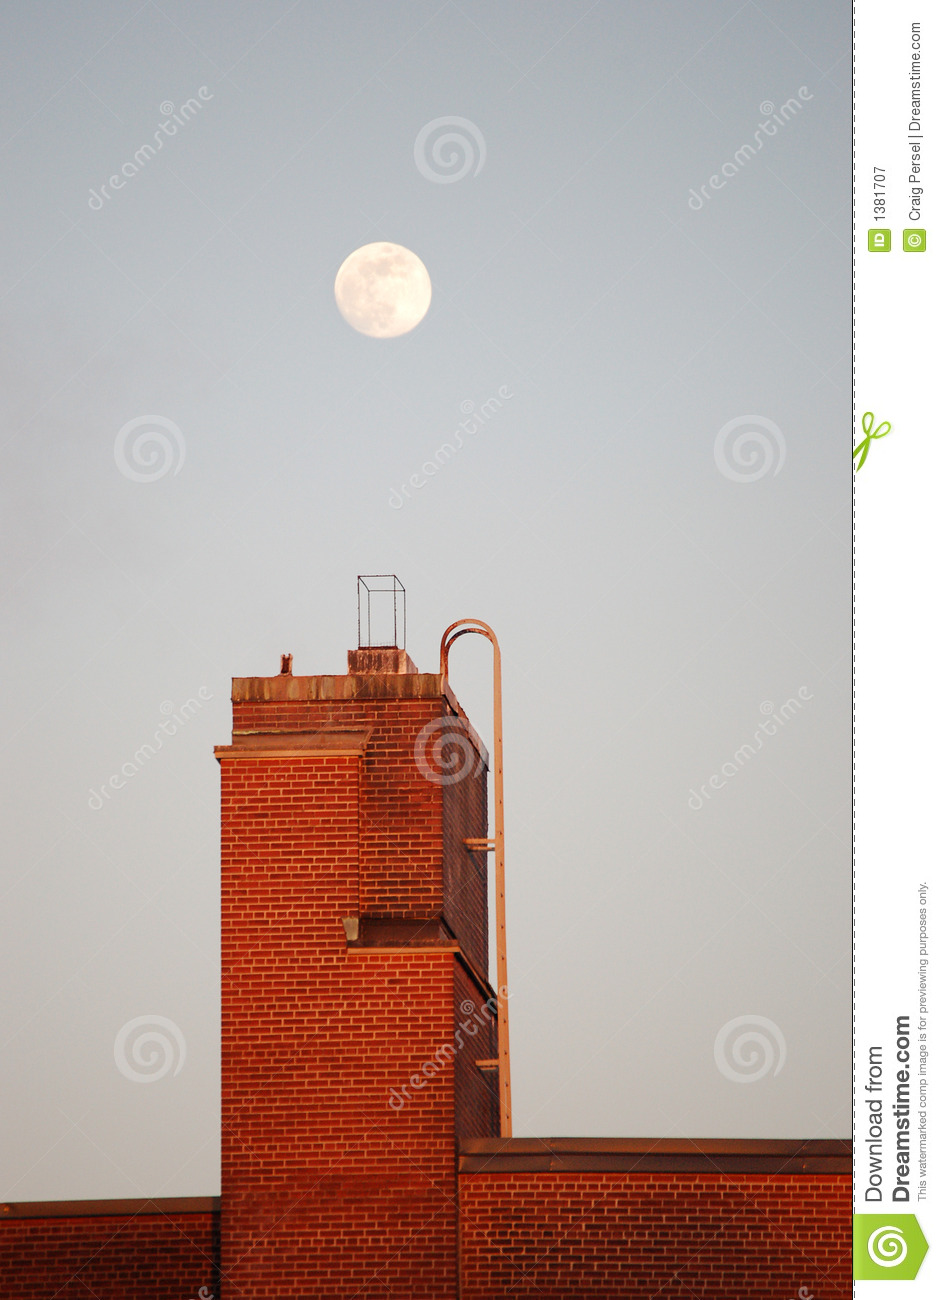 Moonrise Over Building